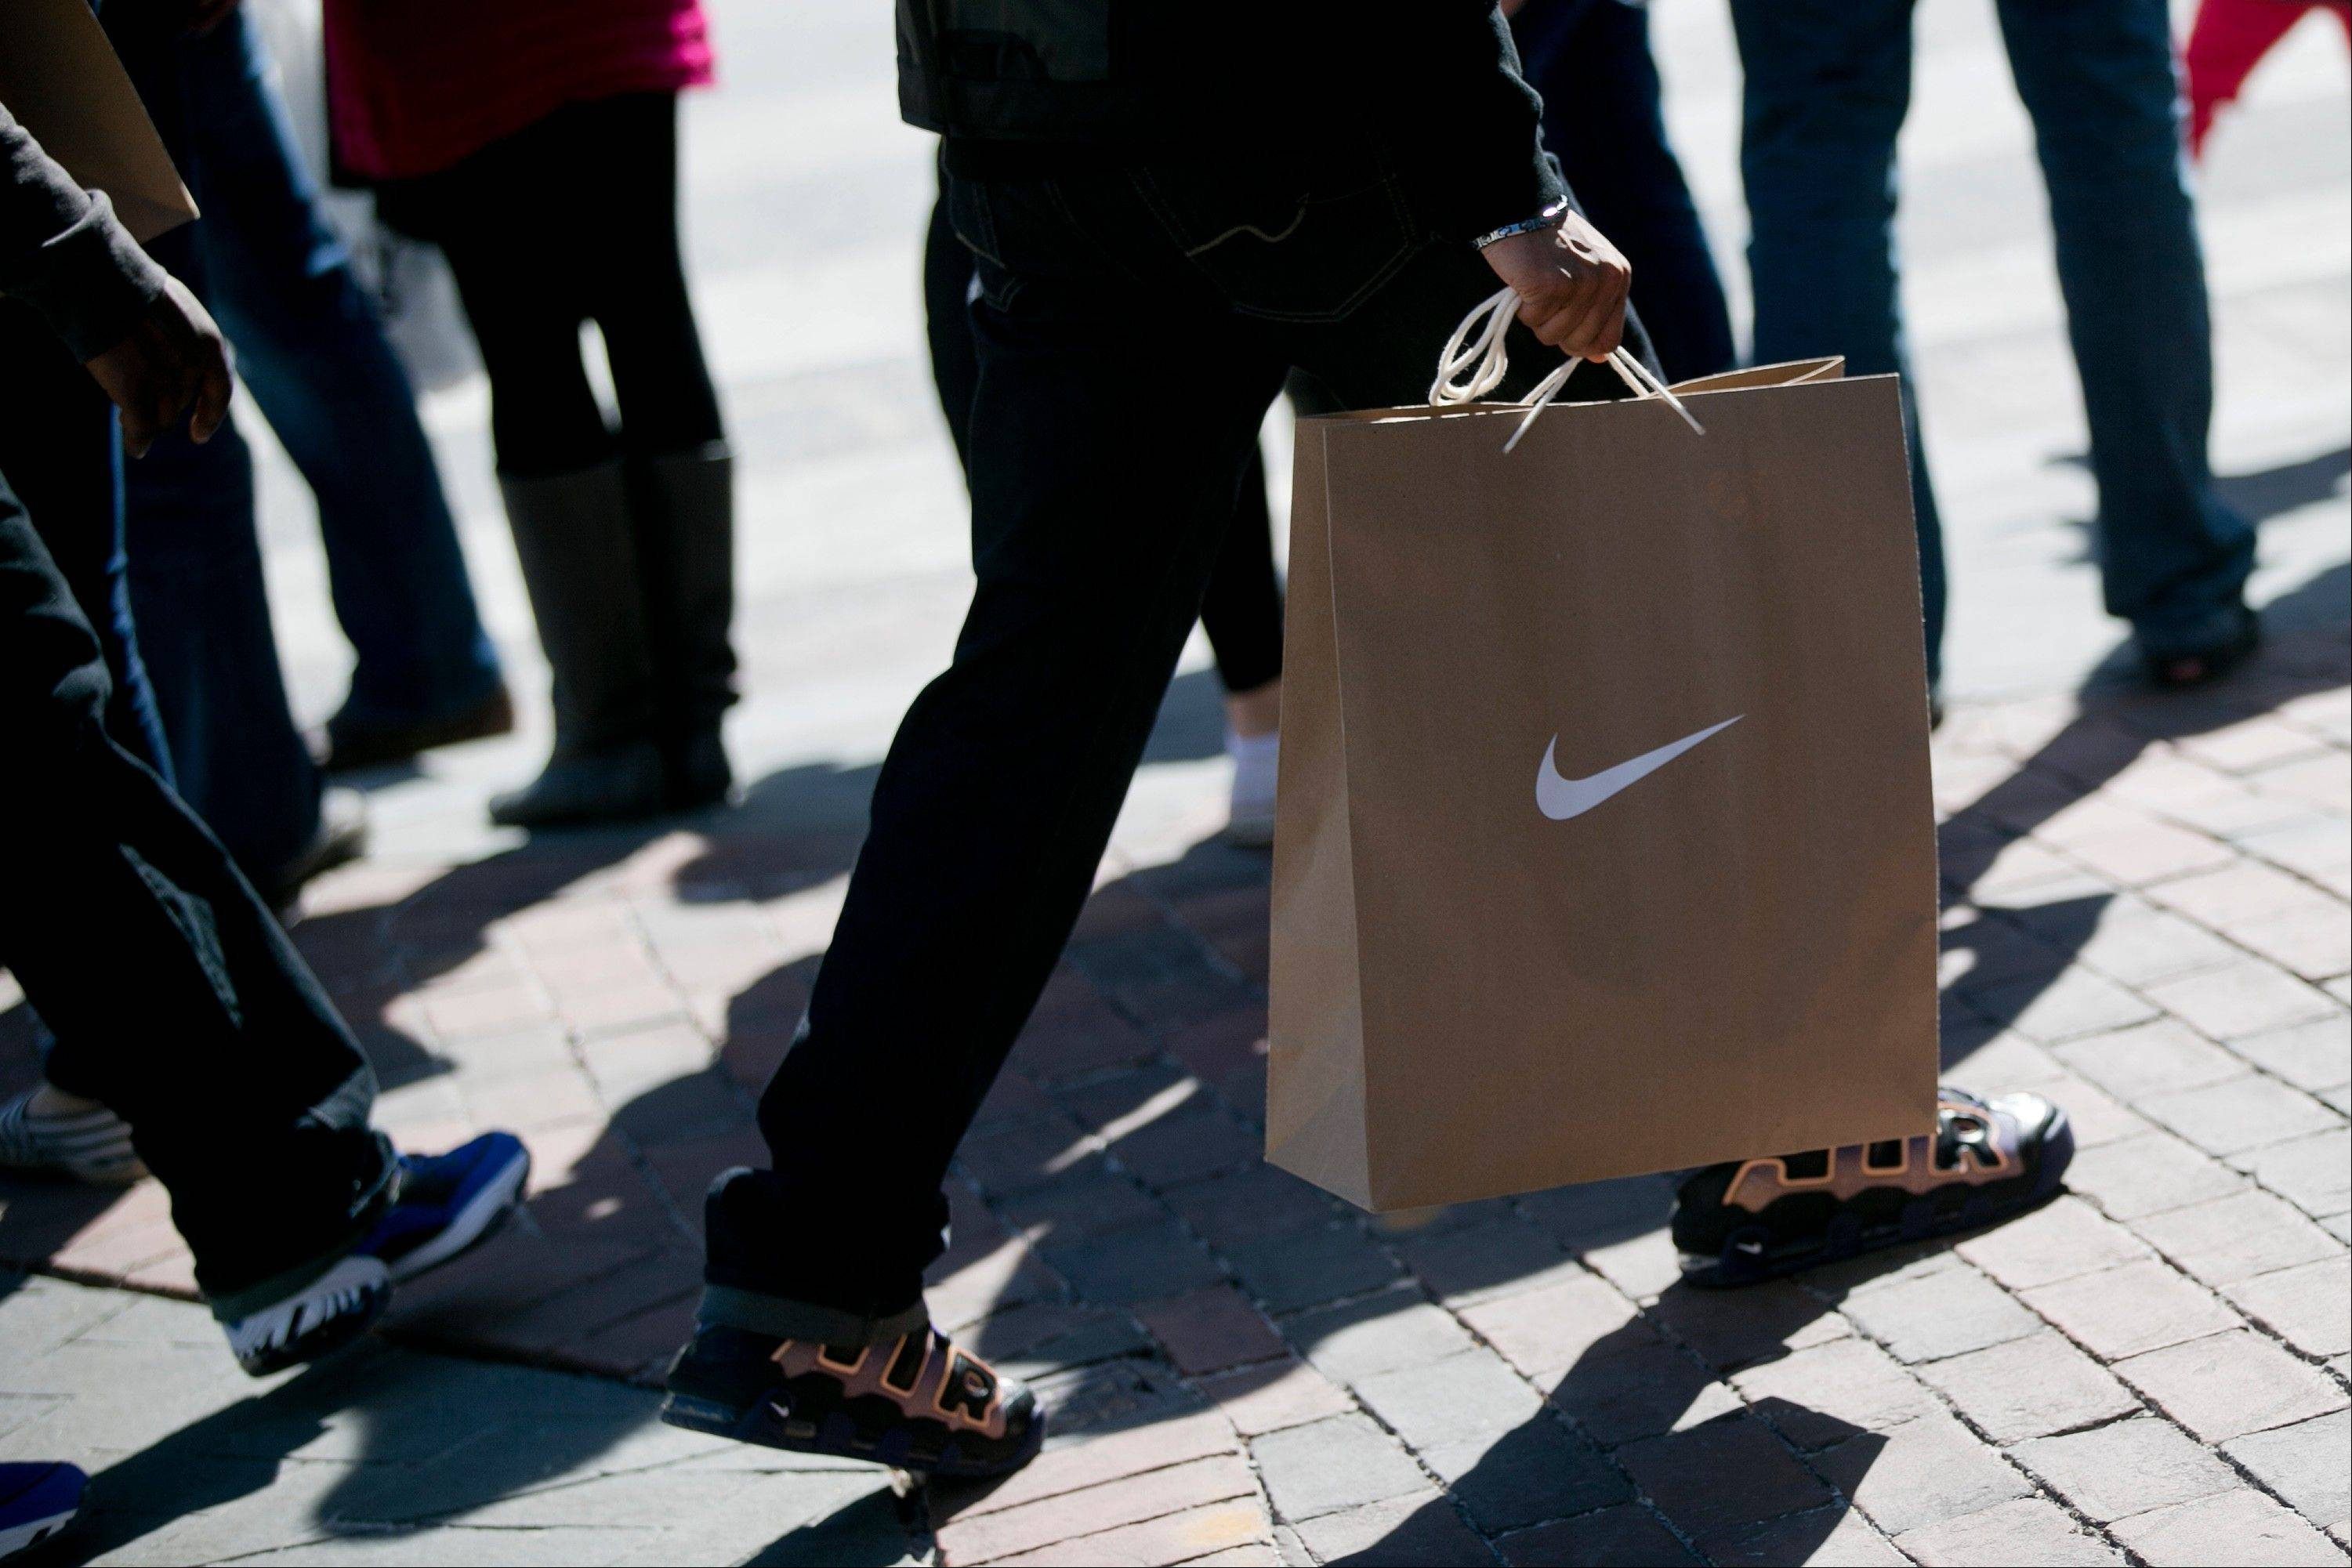 Bloomberg News/March 9A man carries a Nike Inc. shopping bag in the Georgetown neighborhood of Washington, D.C.